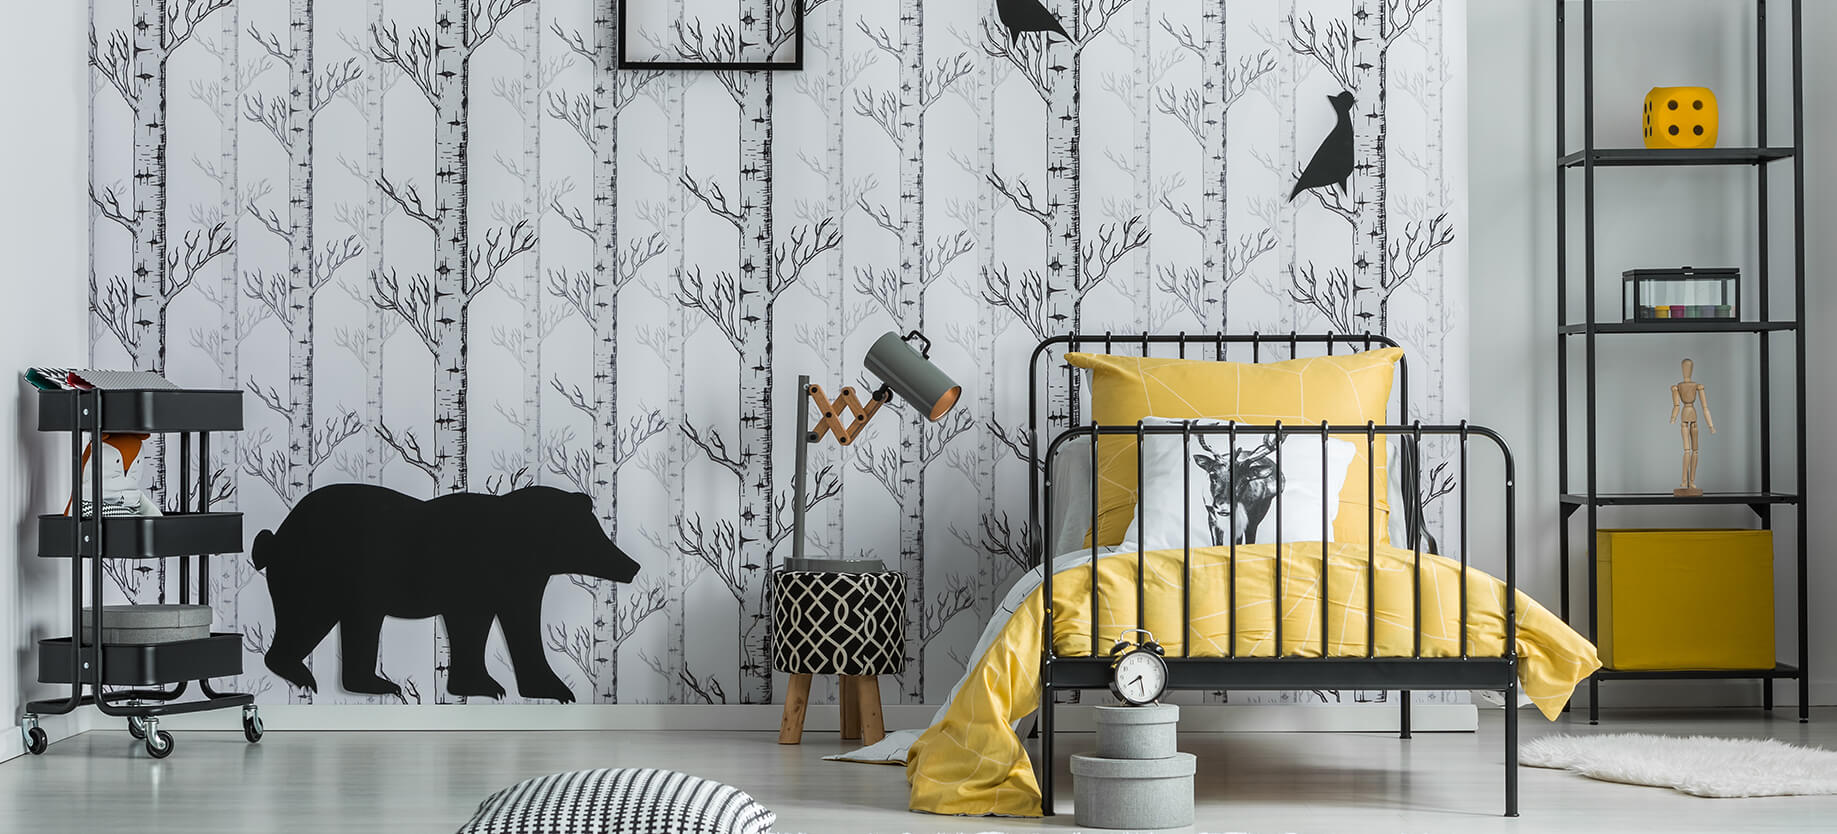 Chirpy Home Decor Ideas Inspired by the Birds of India